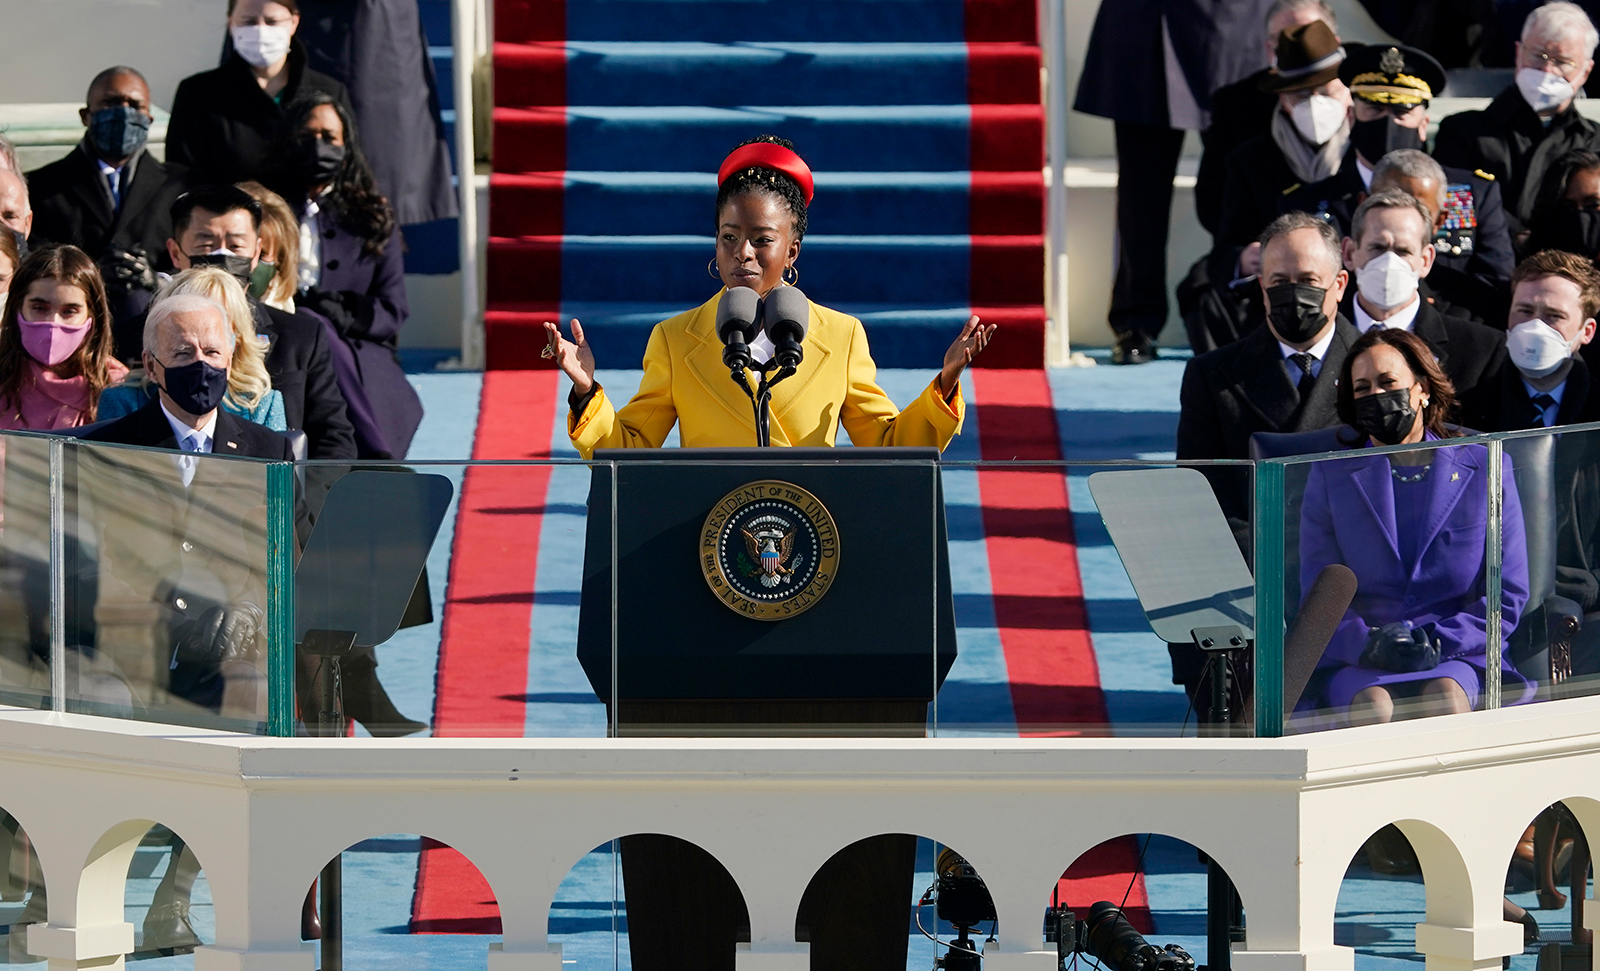 National youth poet laureate Amanda Gorman recites her inaugural poem during the 59th Presidential Inauguration at the US Capitol in Washington, DC, on January 20.